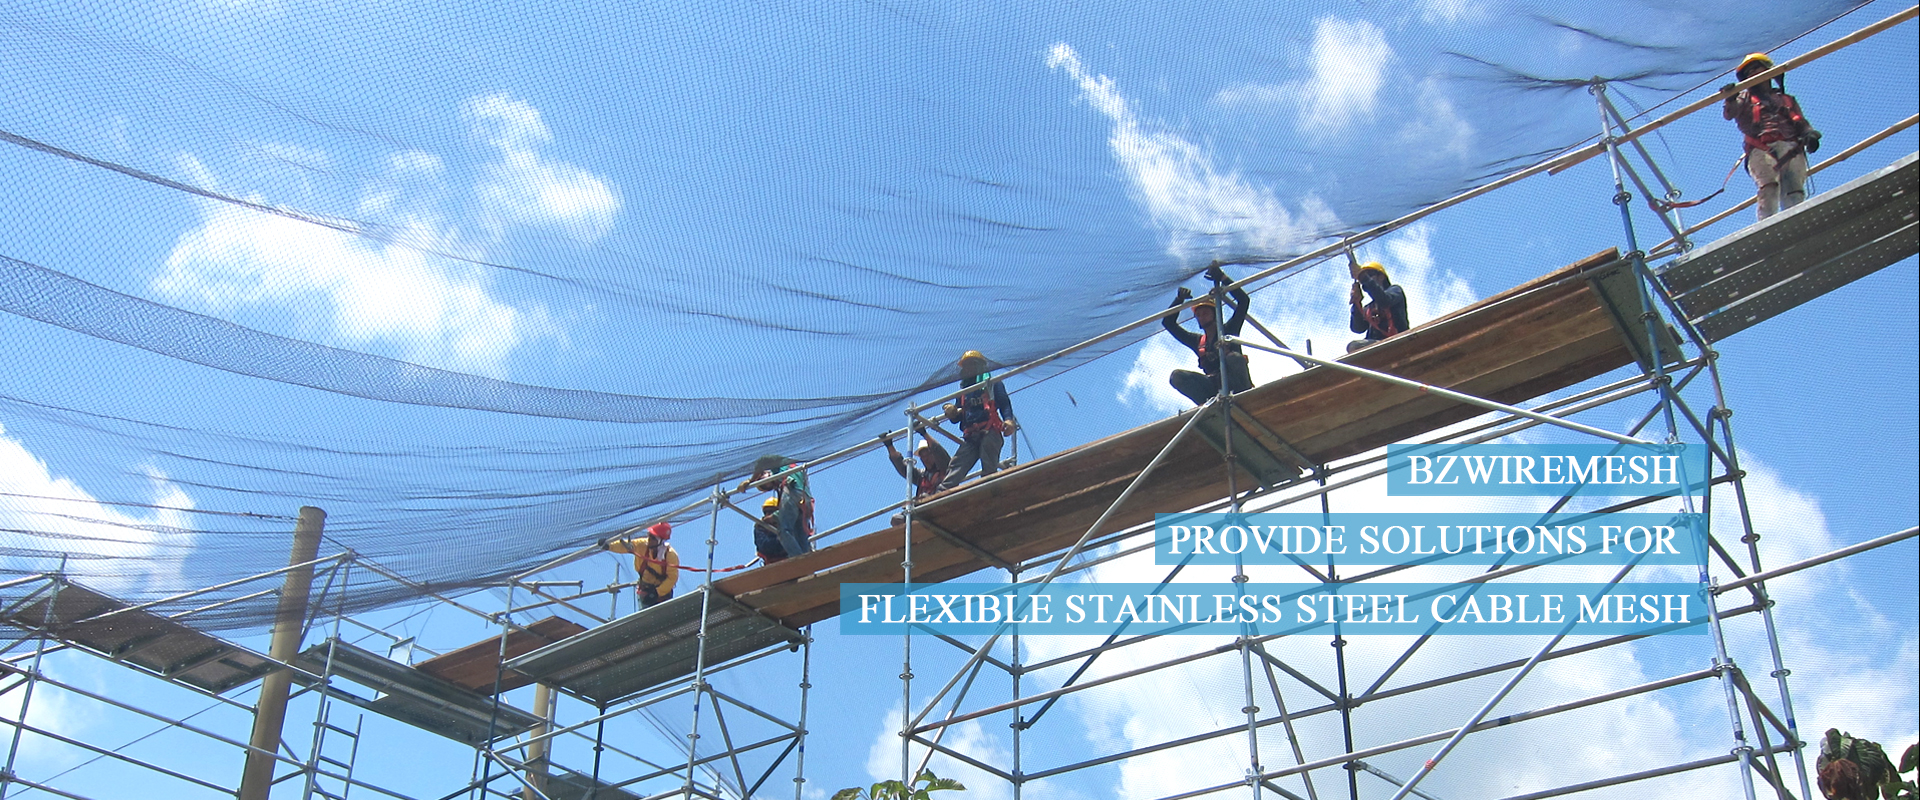 Stainless steel cable mesh for zoos